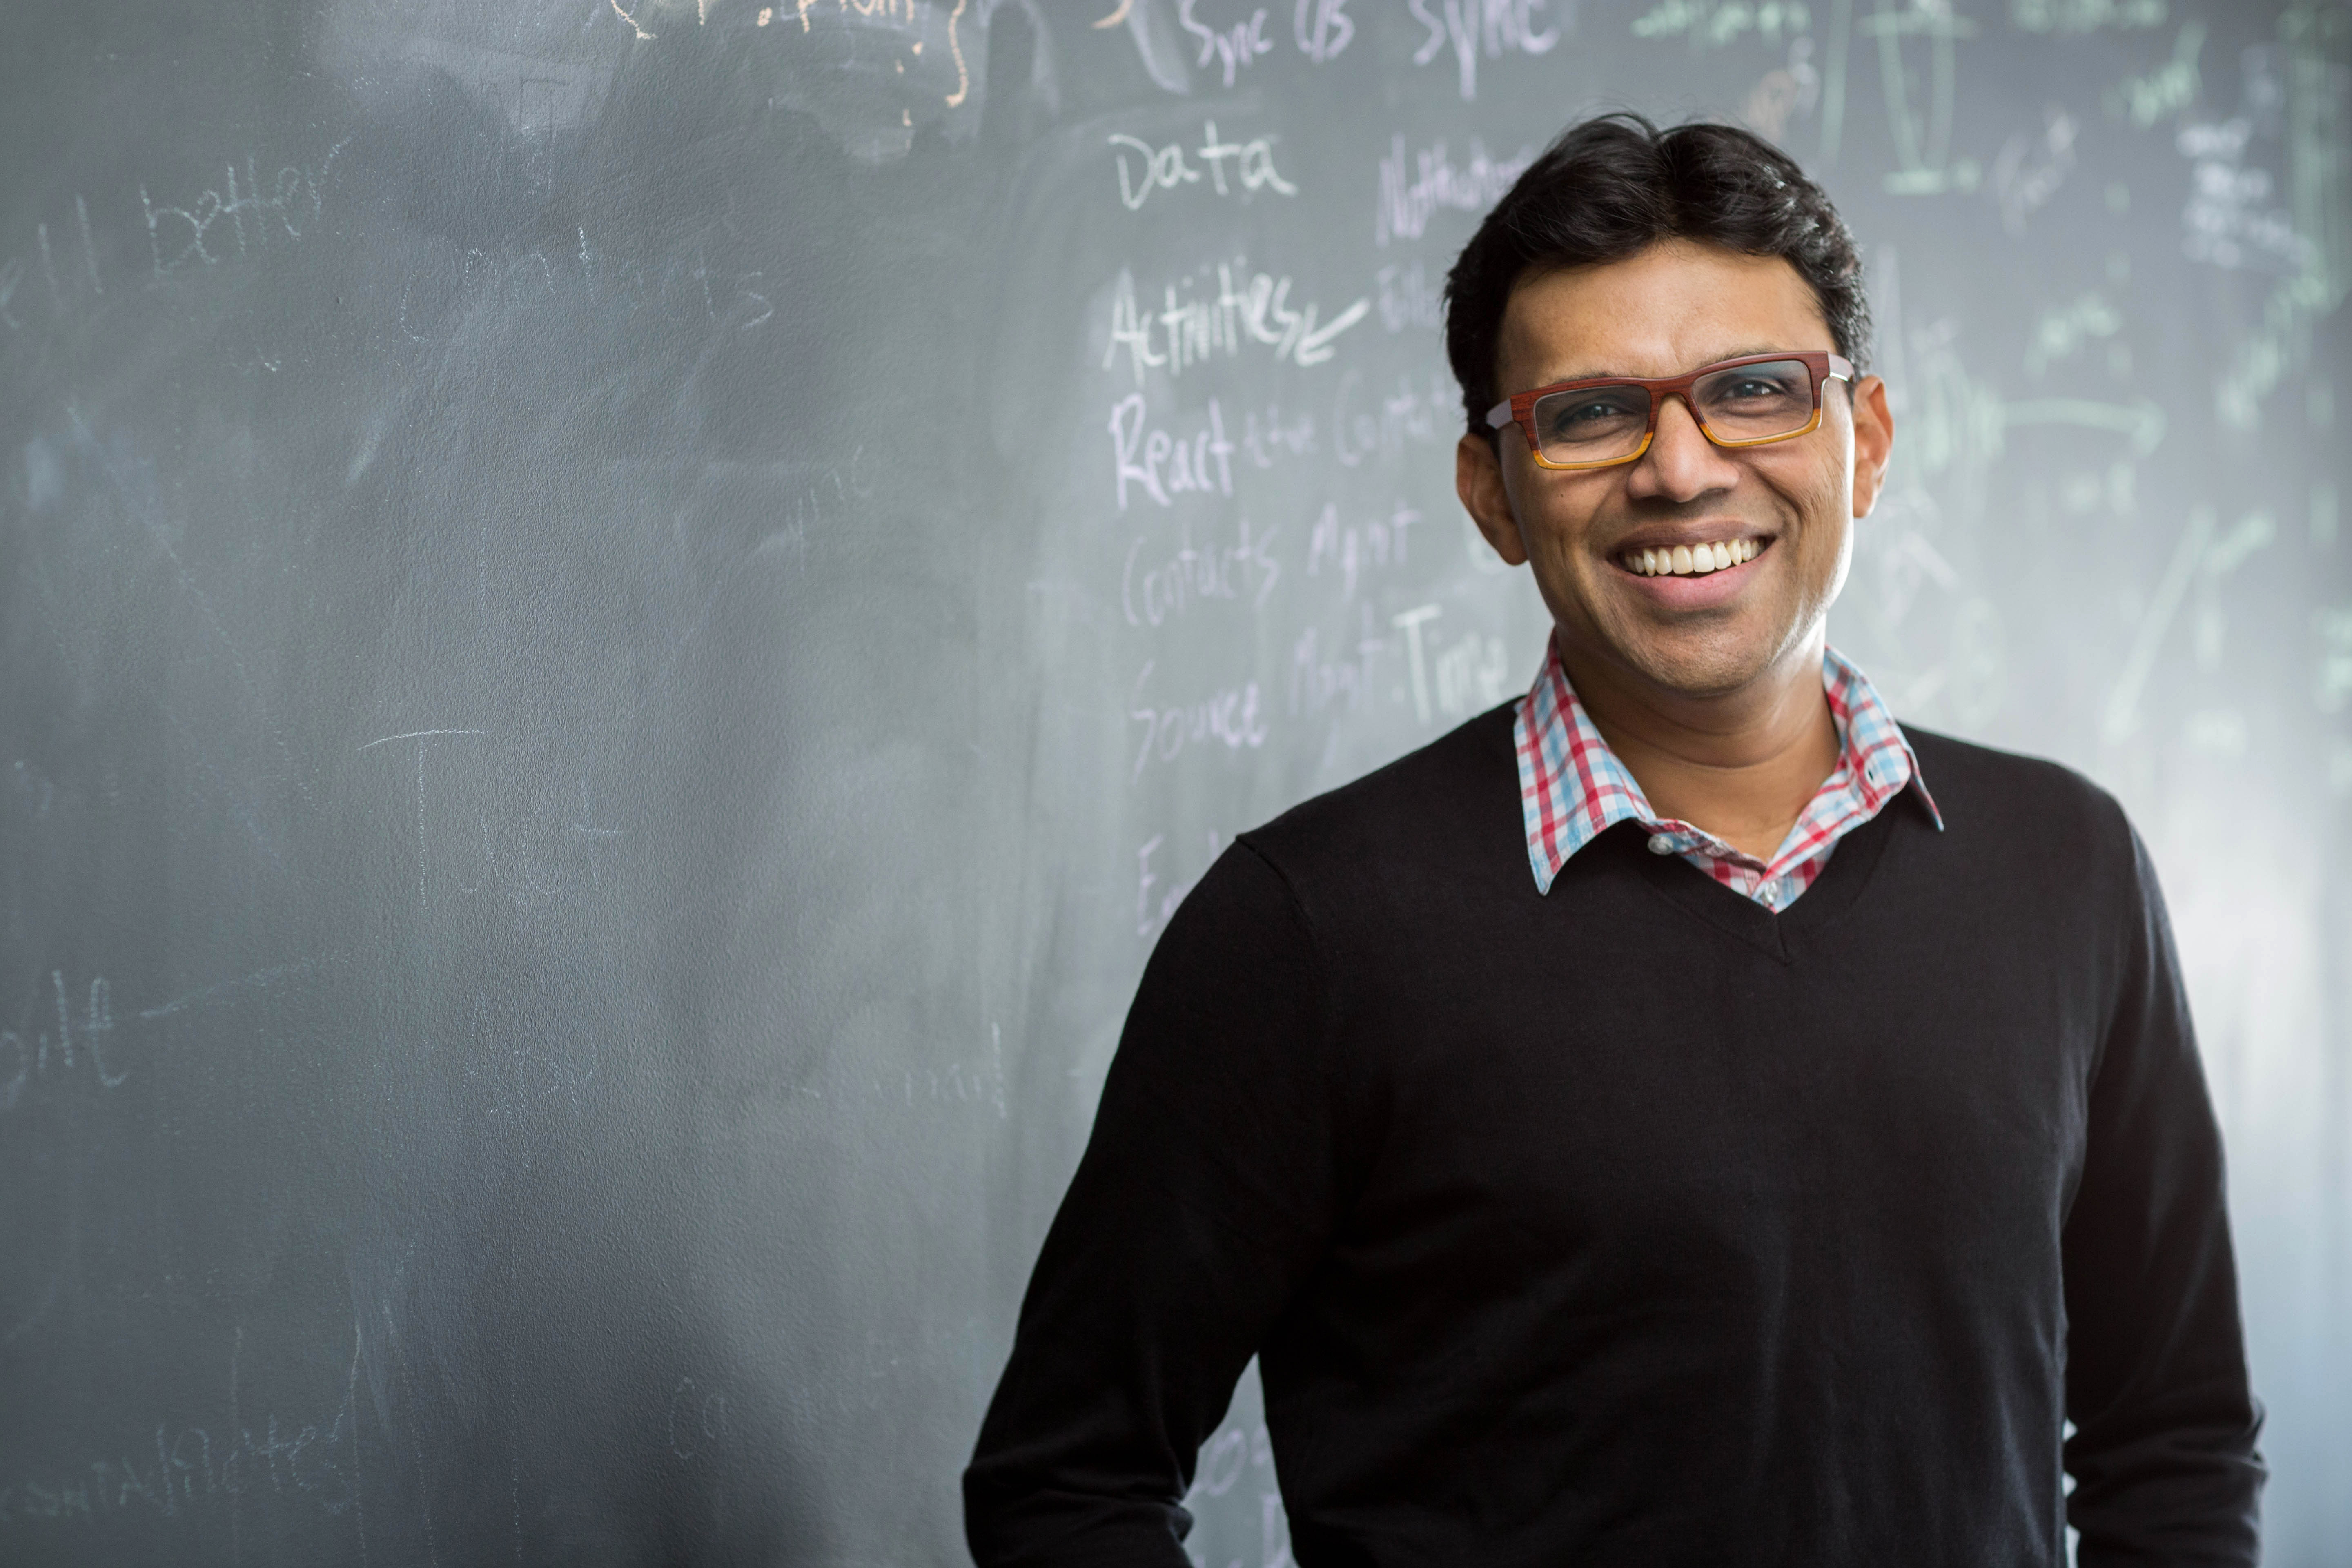 Chuck Ganapathi, founder and CEO of Tact.